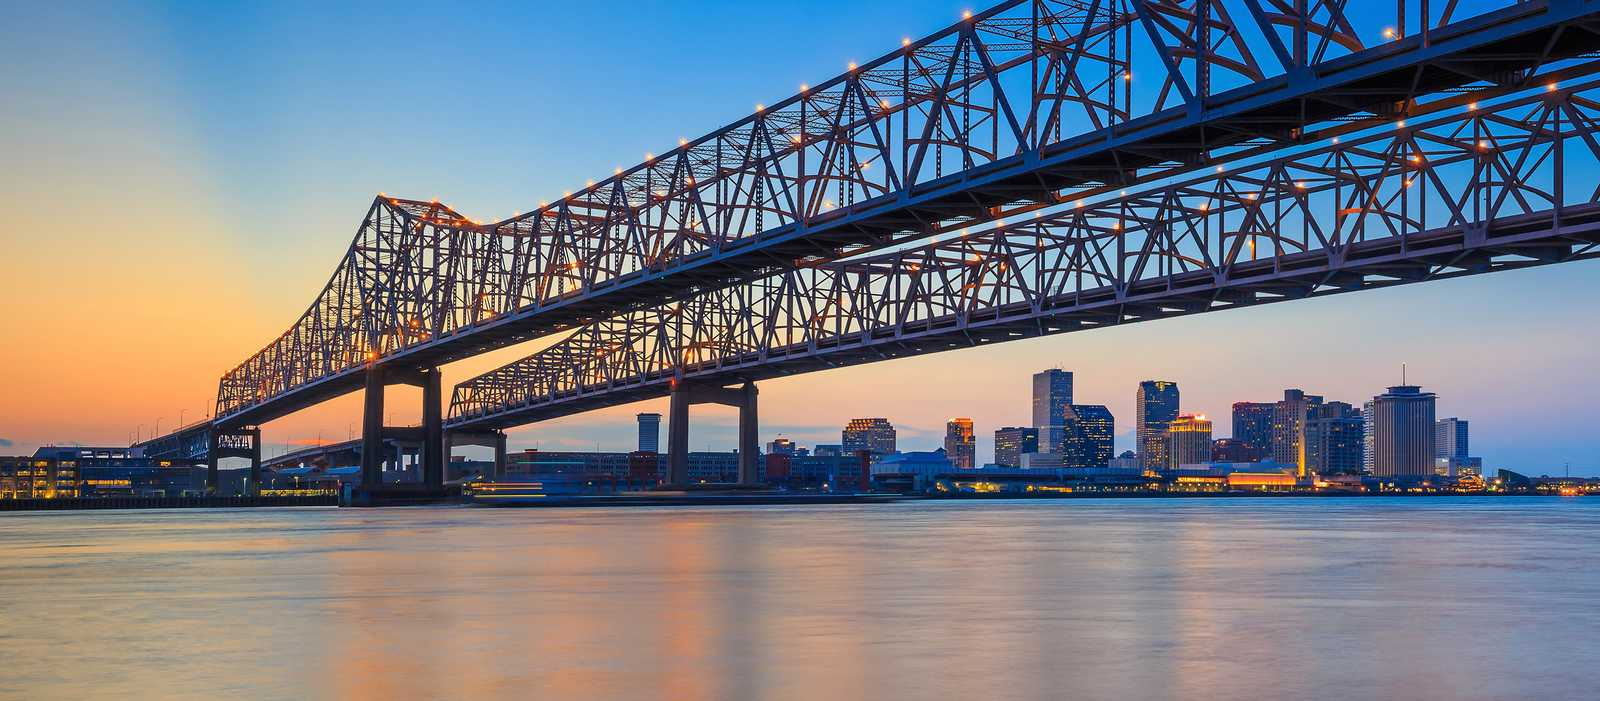 The Crescent City Connection, Mississippi River, New Orleans, Louisiana